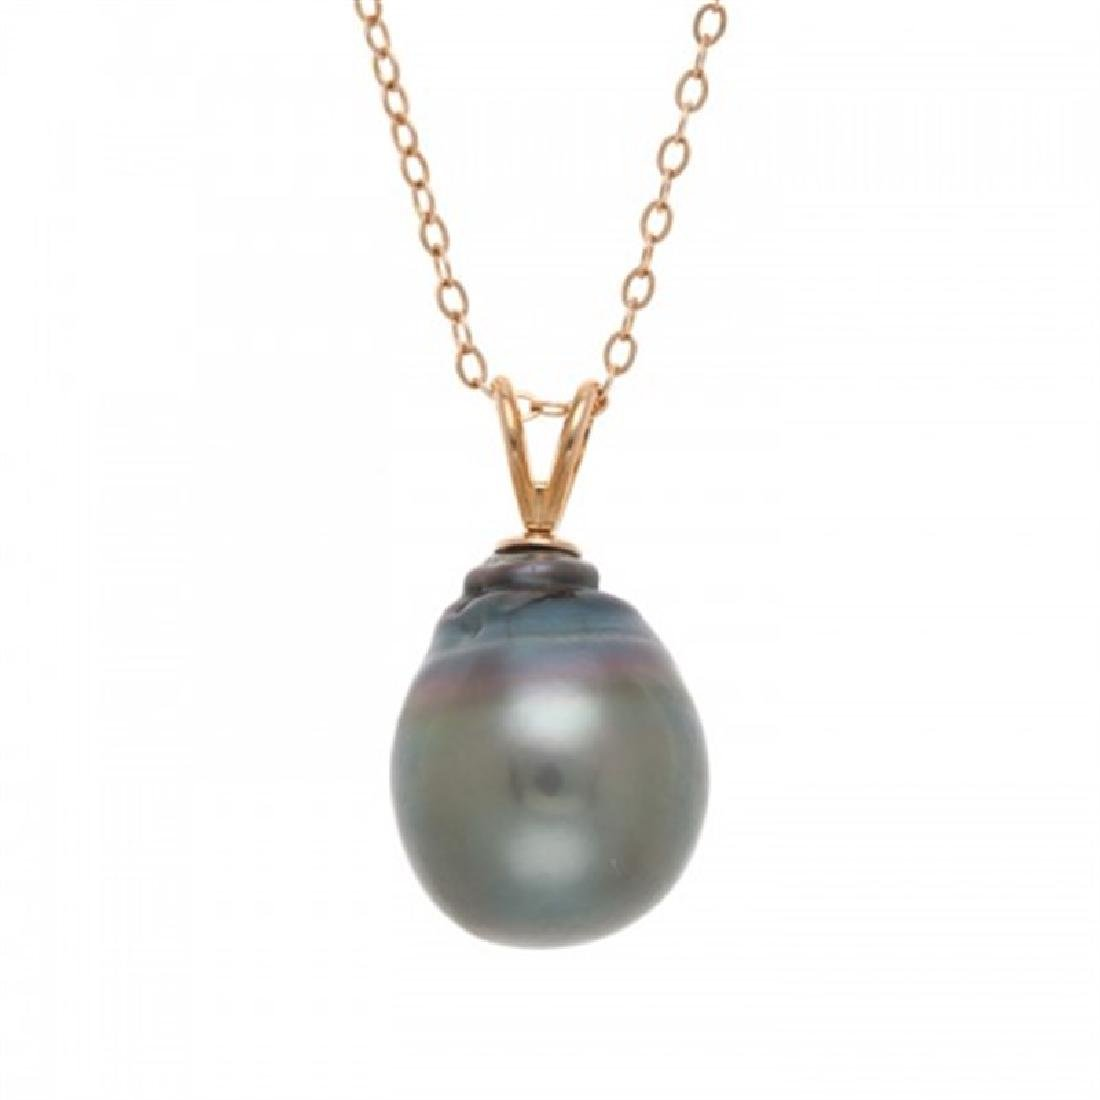 12.5-13.0mm Tahitian Black Baroque Pearl Pendant